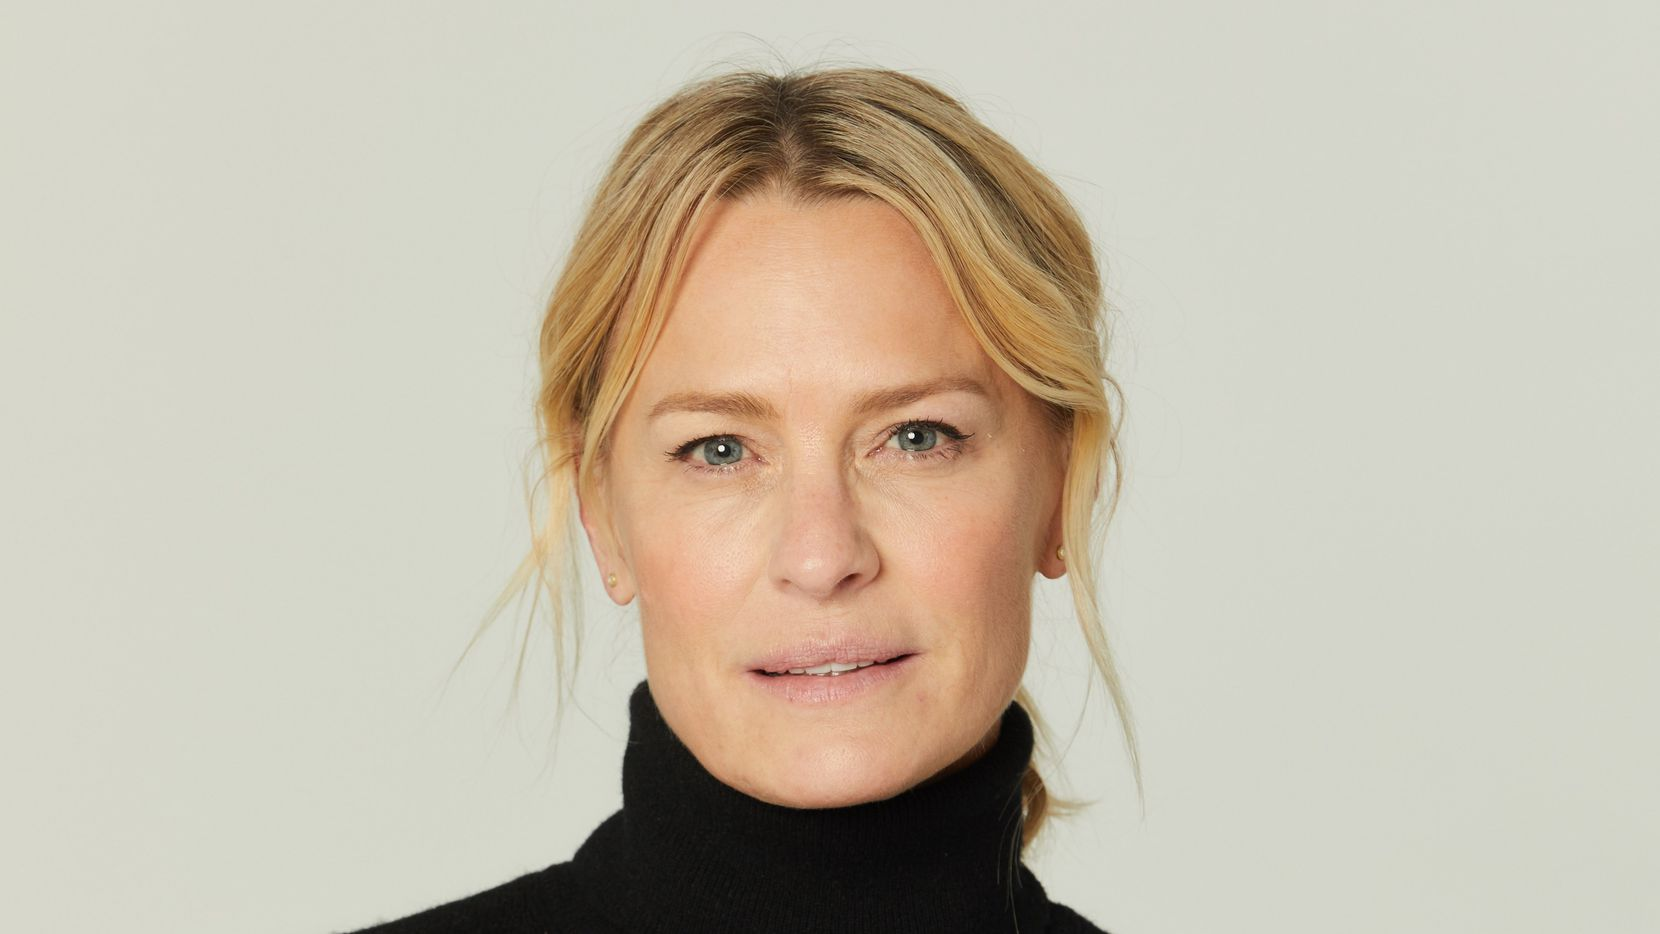 Fort Worth-born actress Robin Wright stars and directs the new film 'Land,' which she describes as one of her most personal projects ever.